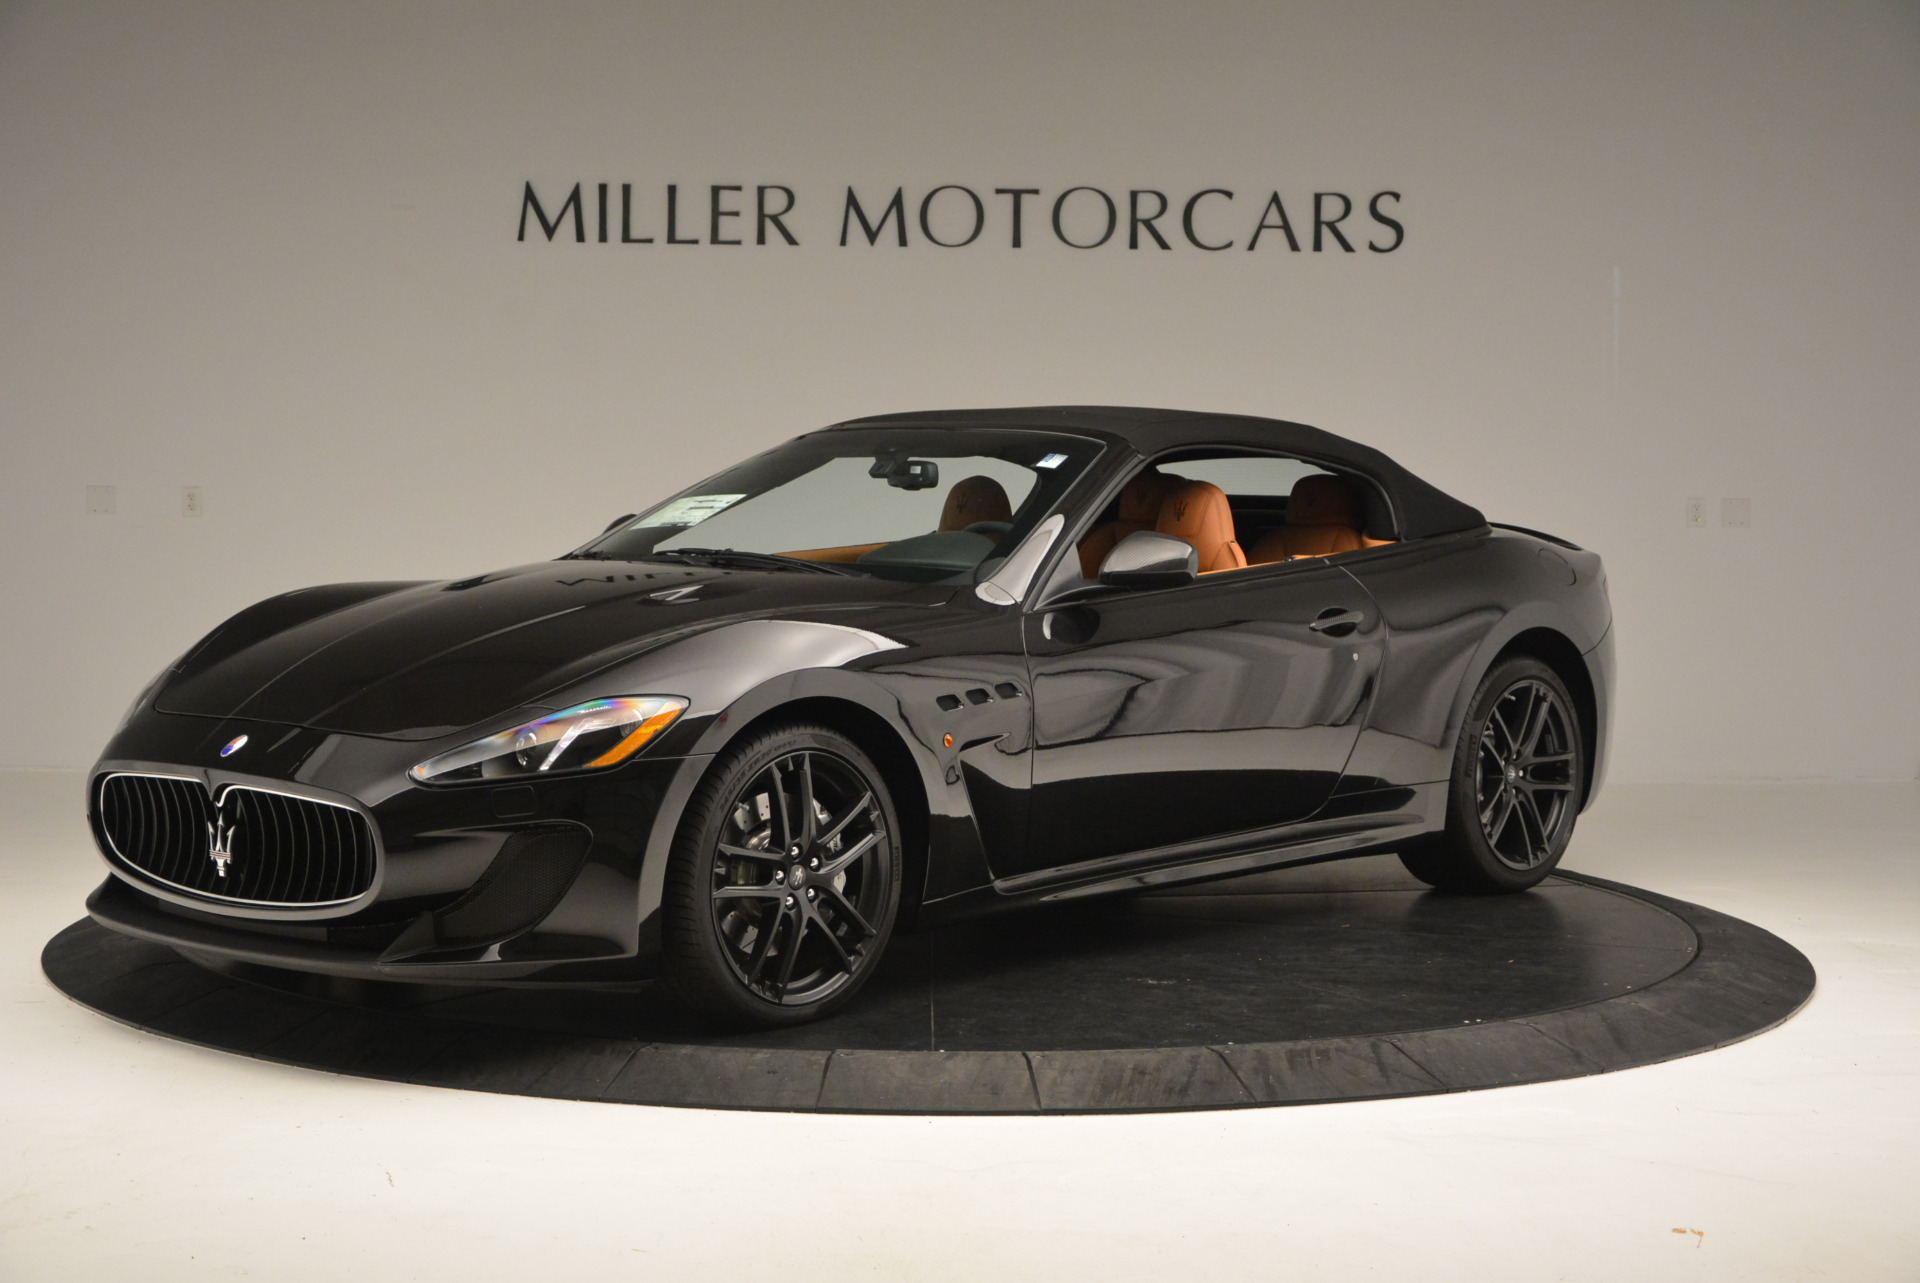 New 2017 Maserati GranTurismo MC CONVERTIBLE For Sale In Greenwich, CT 596_p19